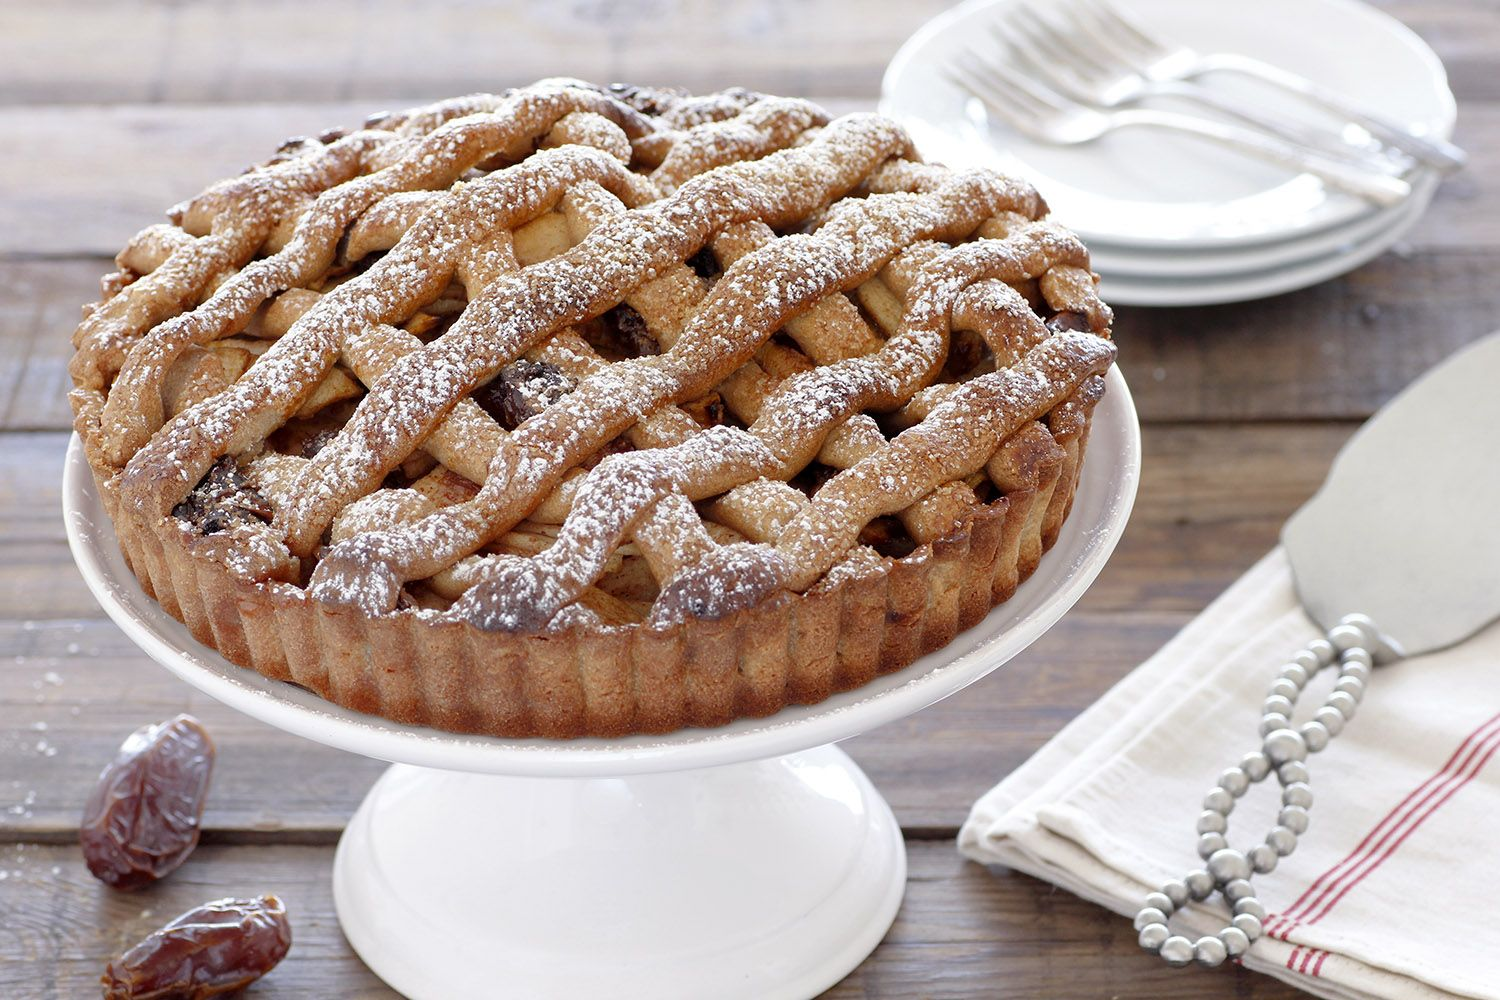 Apple Pie with Madjhul Dates